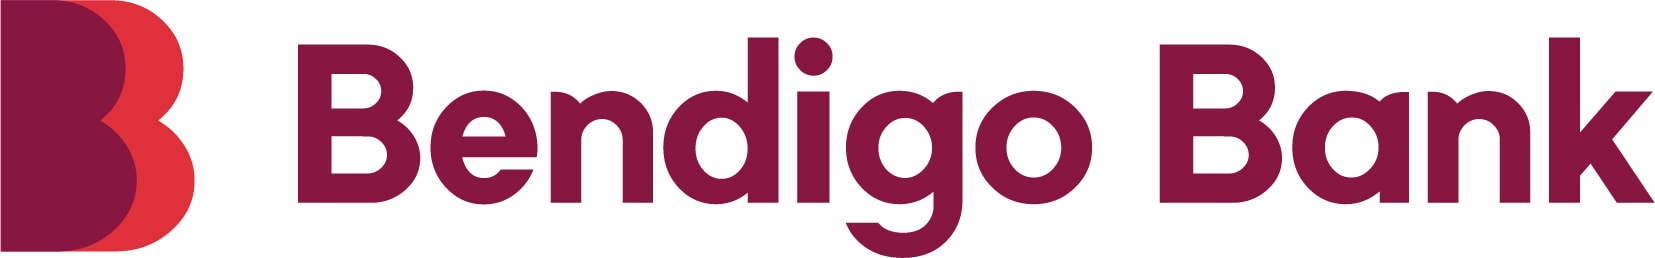 Bendigo Bank Logo 2020